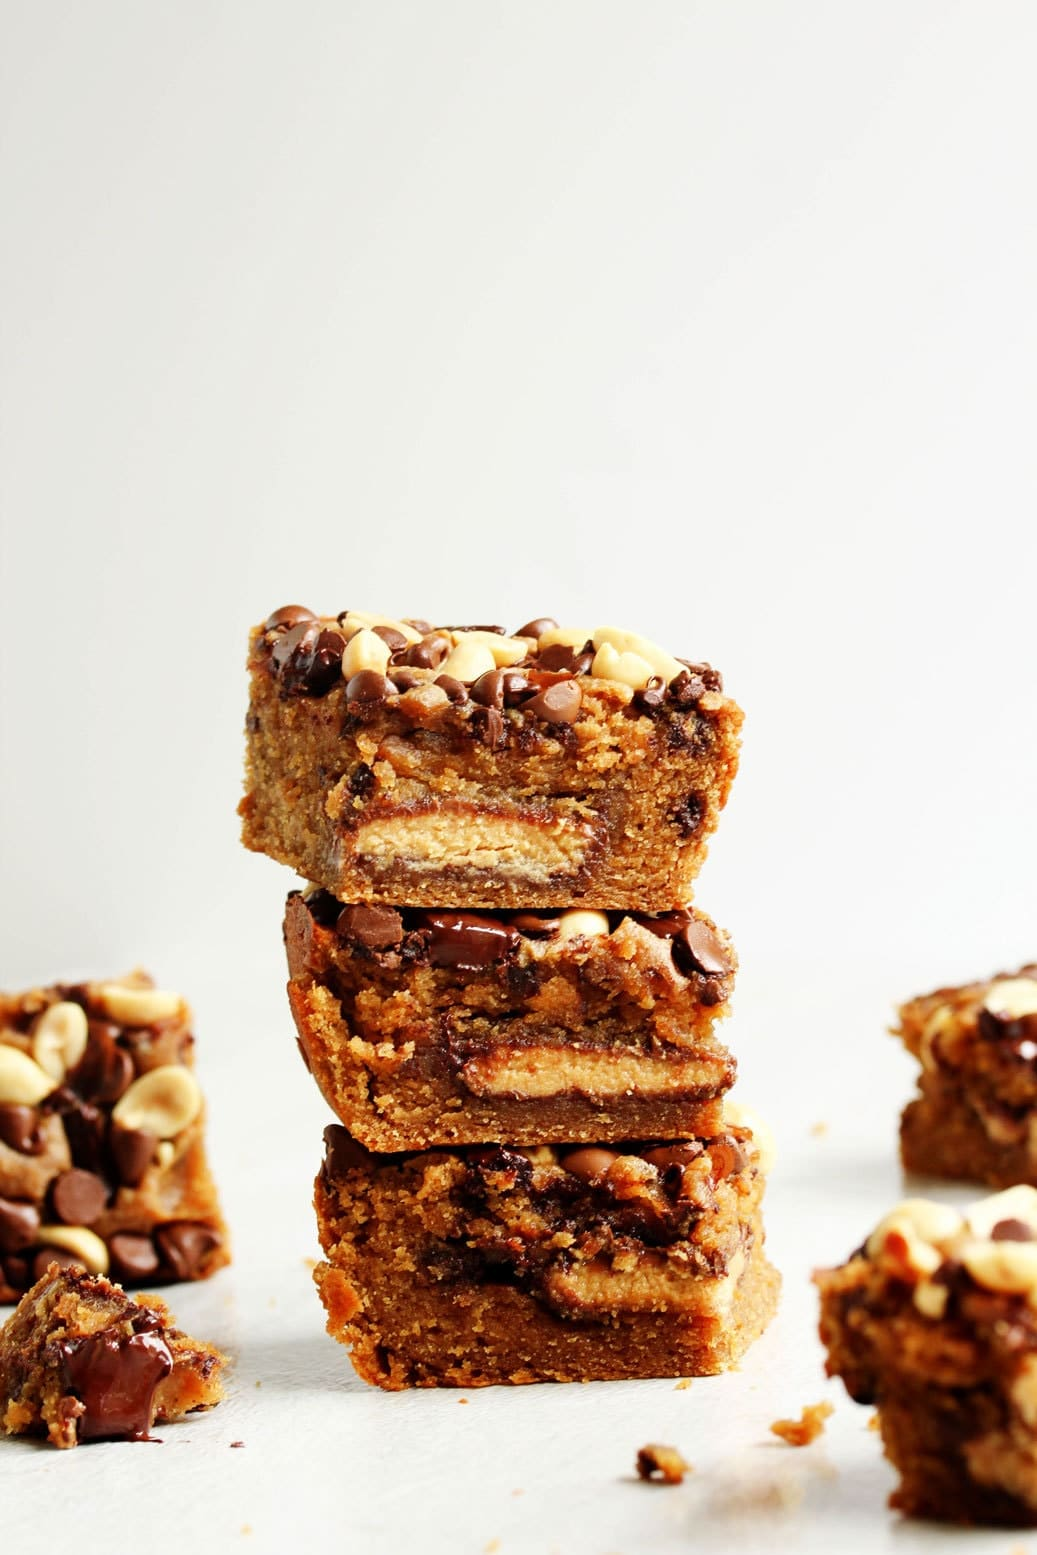 Peanut Butter and Chocolate Chip Blondies 1